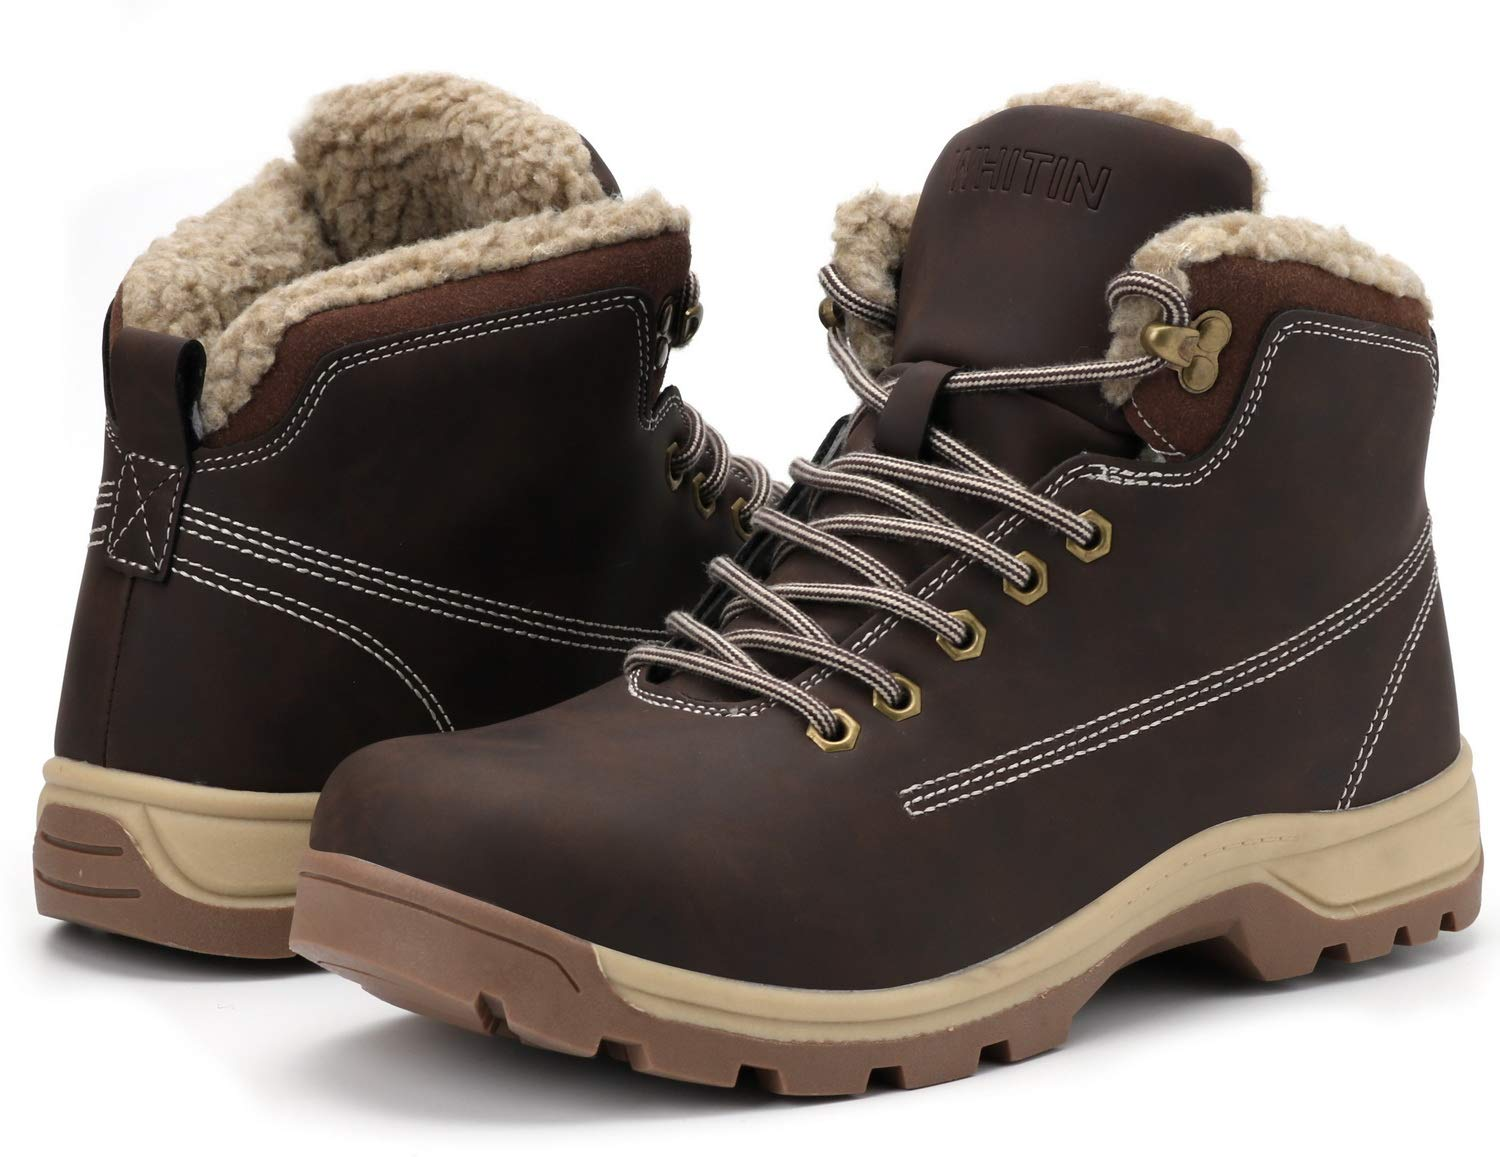 WHITIN Men's Winter Shoes Snow Boots Outdoor Trekking for Weather Warm Work Thermo Insulated Fully Fur Lined Nubuck Leather Hiking Waterproof Ankle Toe High Top Anti-Slip Ice Brown Size 8 by WHITIN